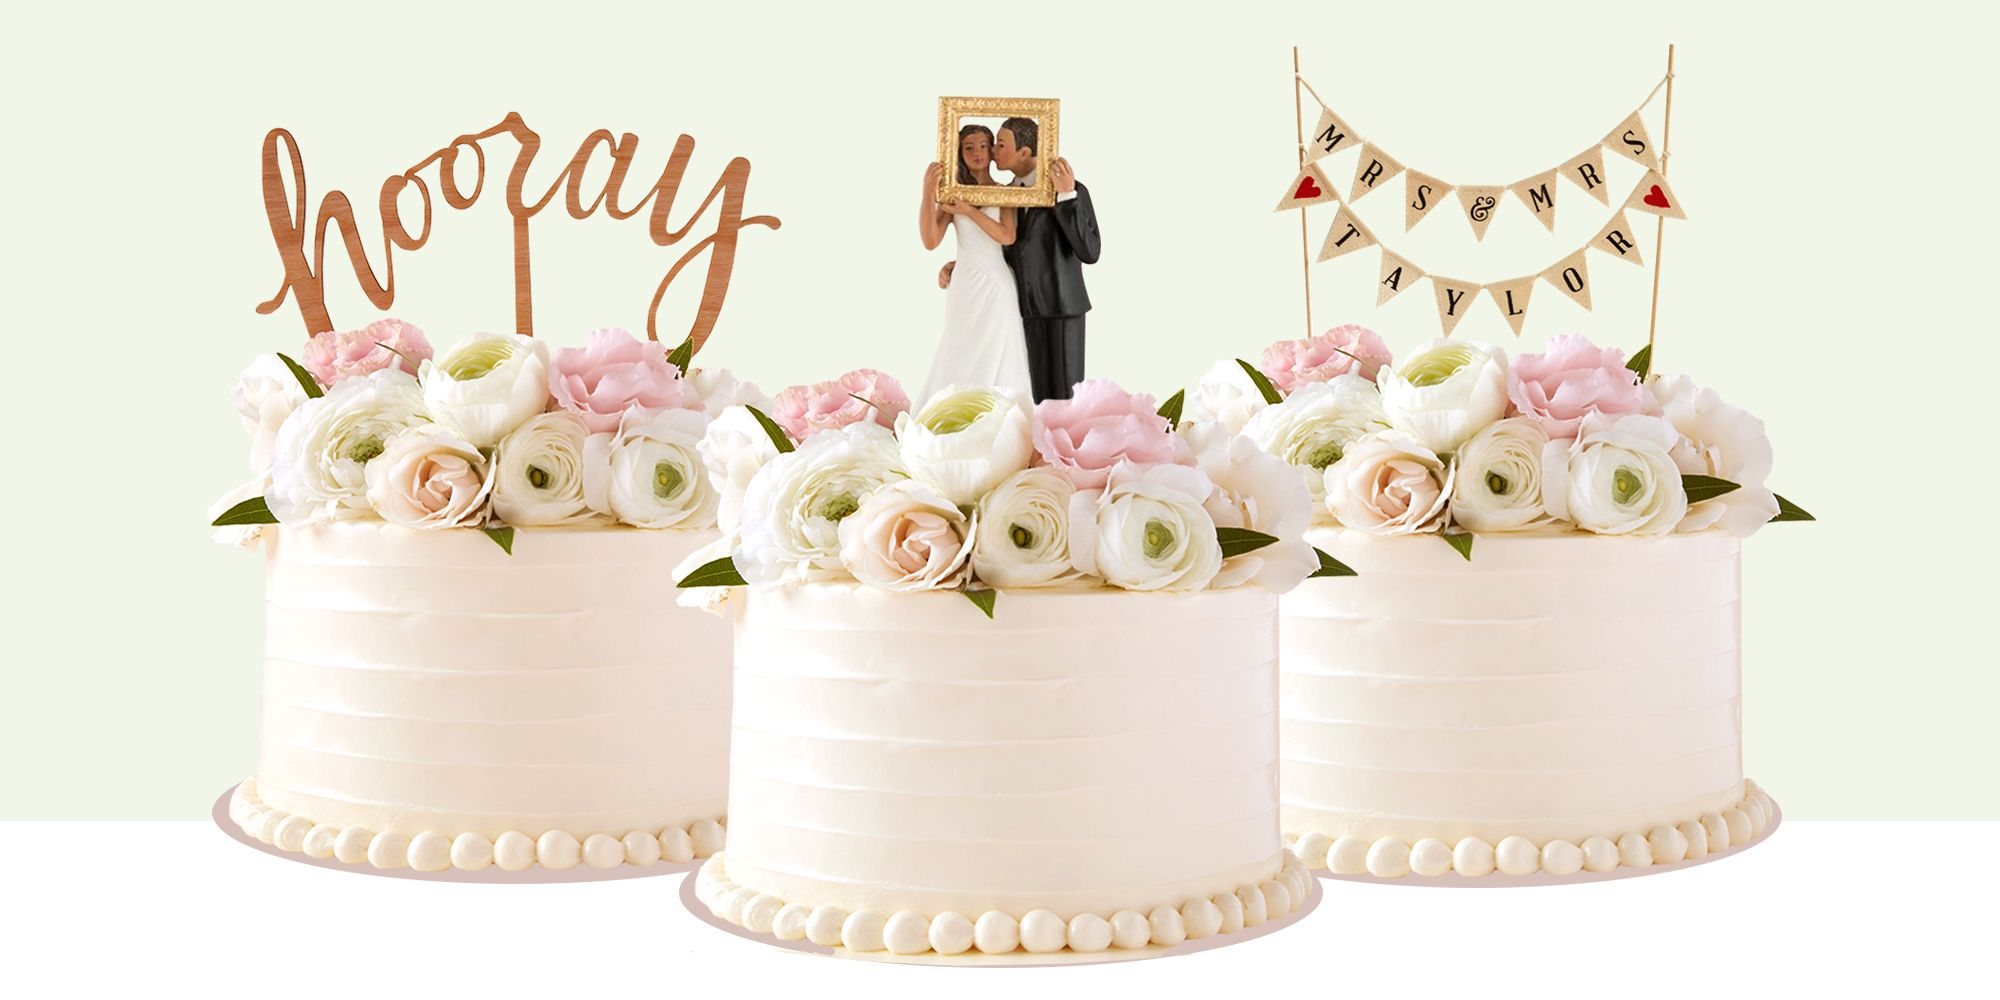 10 Best Wedding Cake Toppers for 2018 - Romantic Wedding Toppers ...